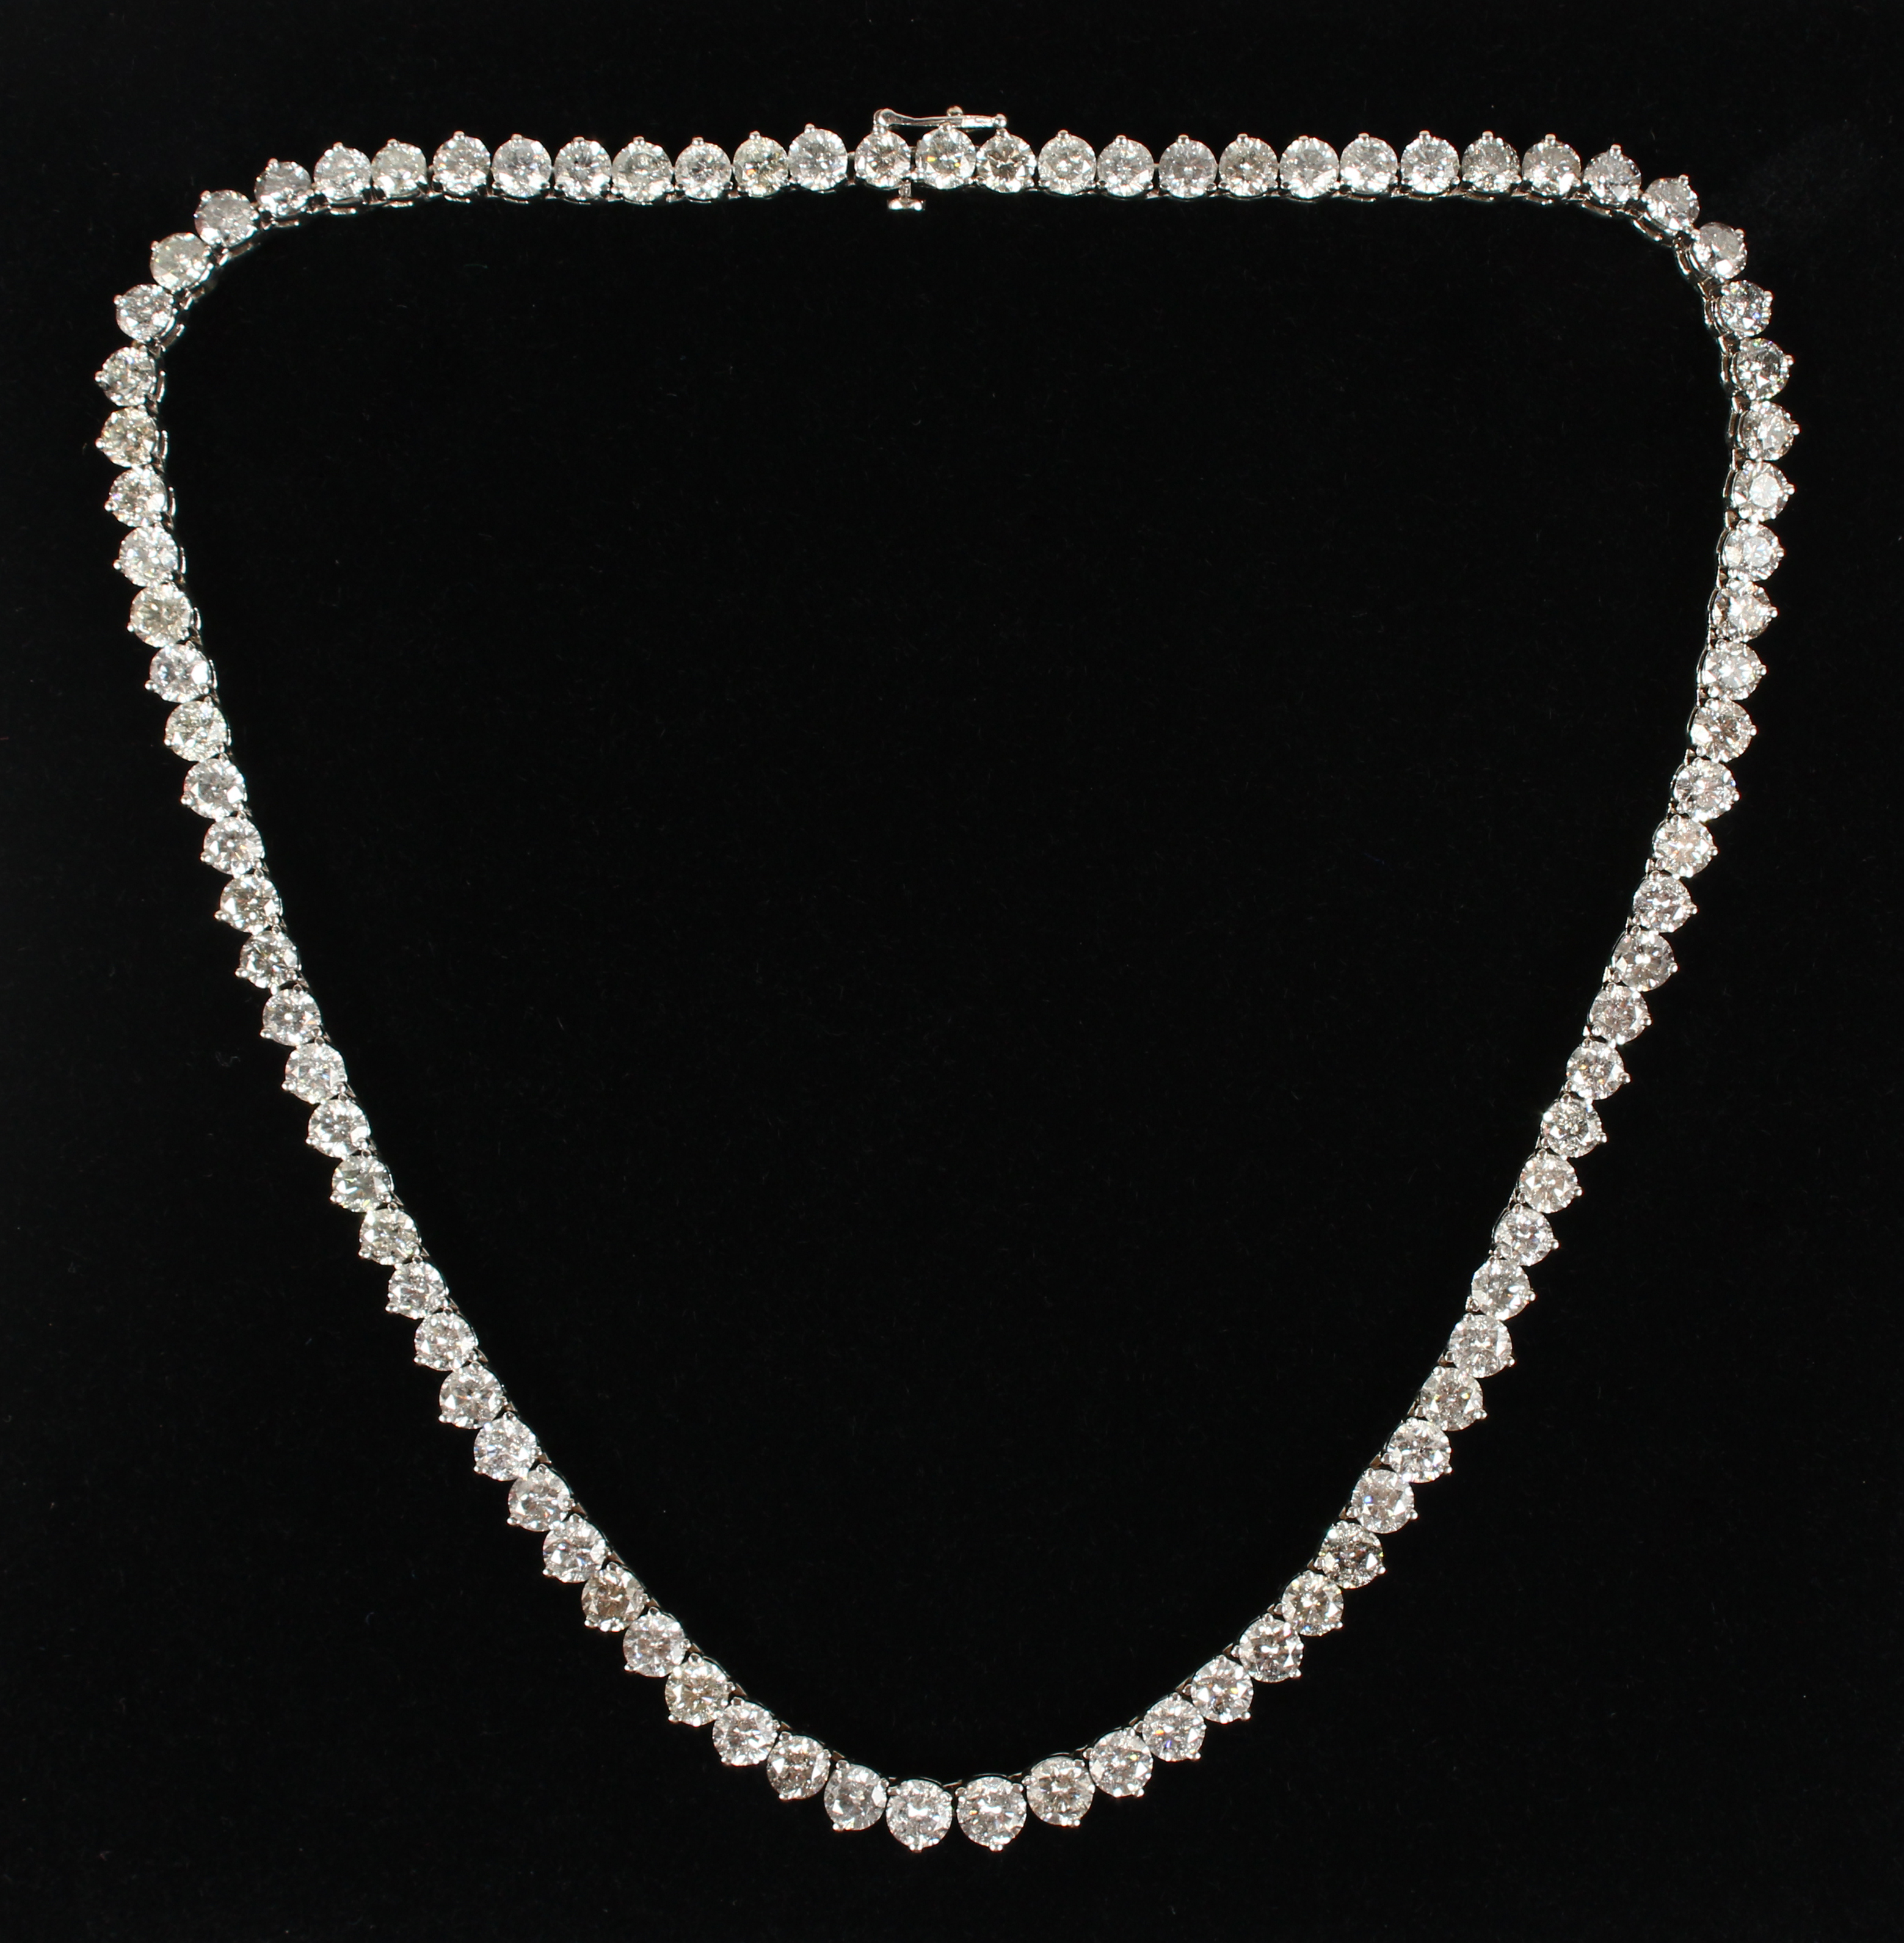 This outstanding 18ct white gold diamond necklace of 85 stones totalling 48 carats./Auctioneers and Valuers